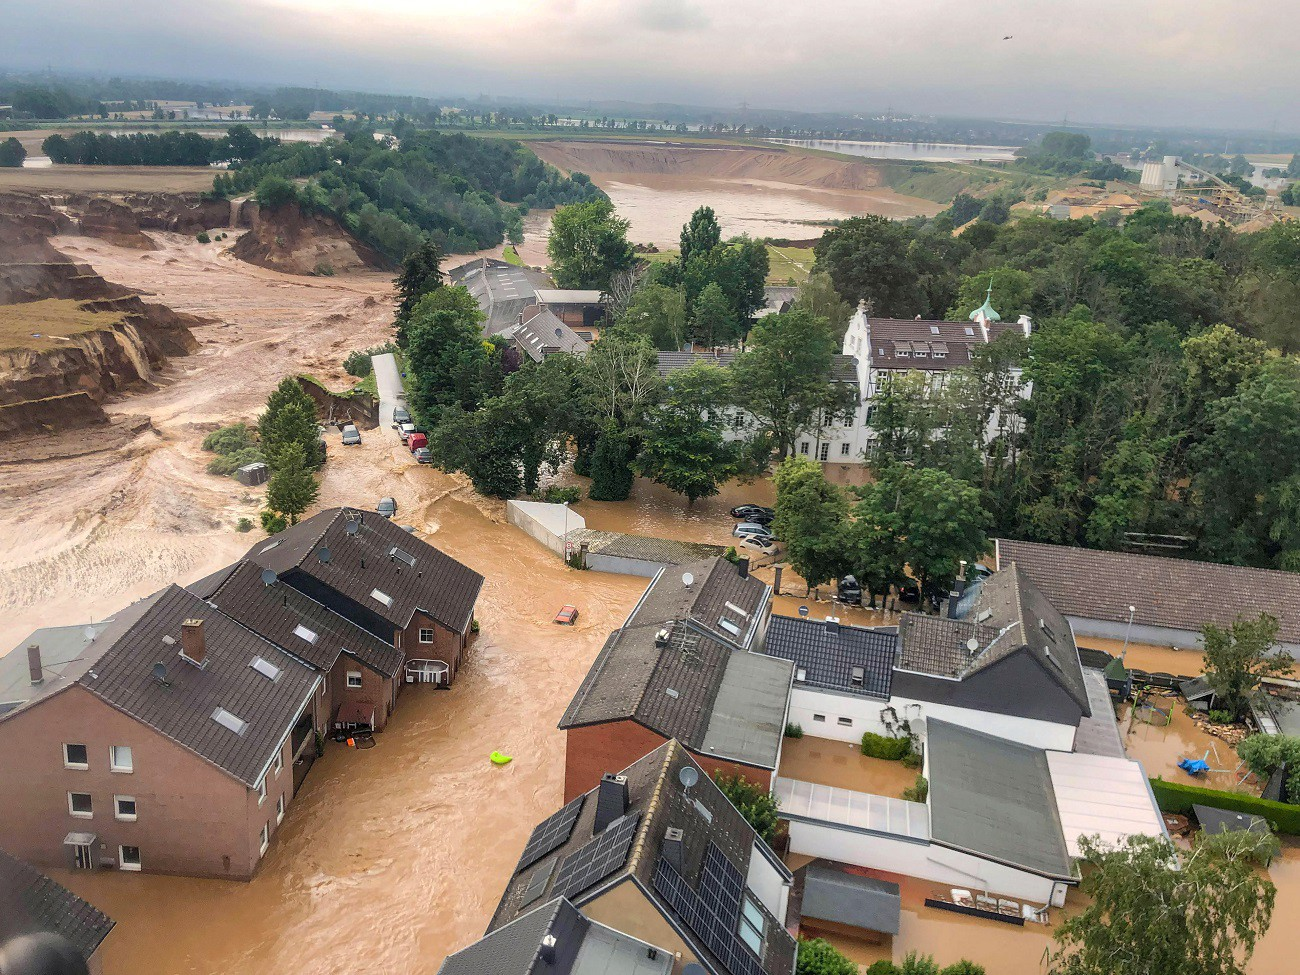 An areal view after flooding at Erftstadt-Blessem, Germany, July 16, 2021